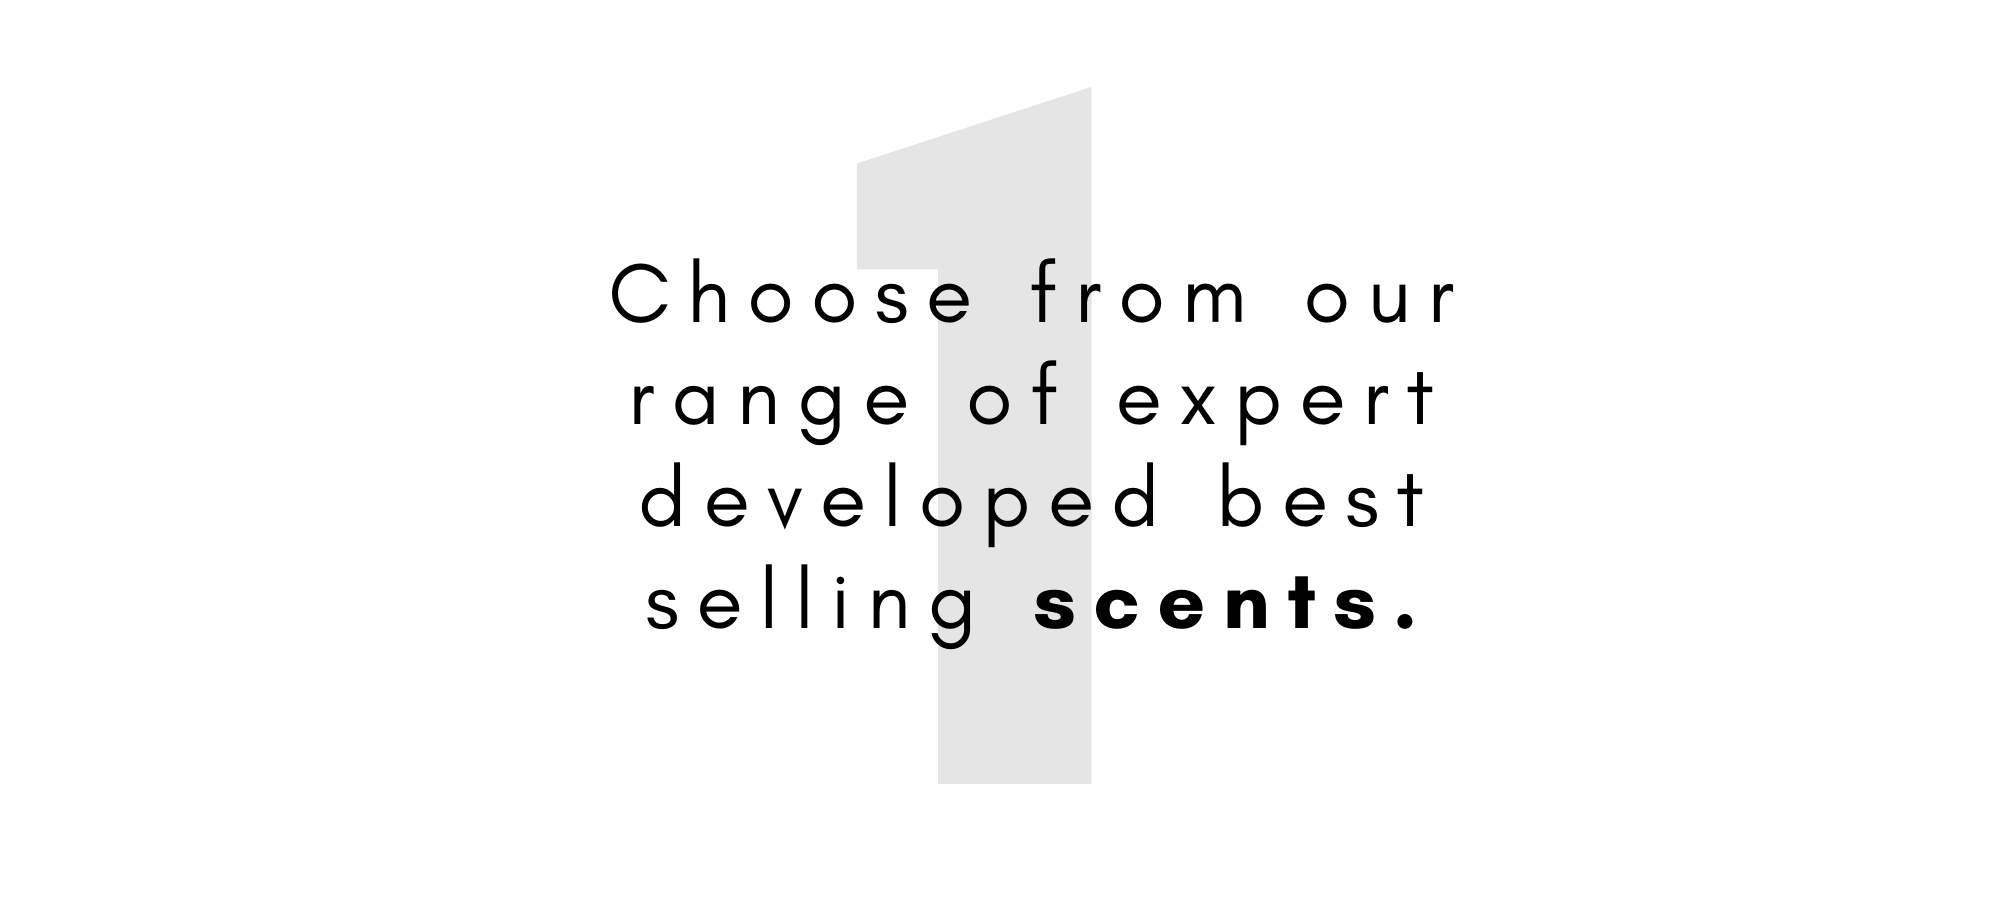 Choose from our range of expert developed scents